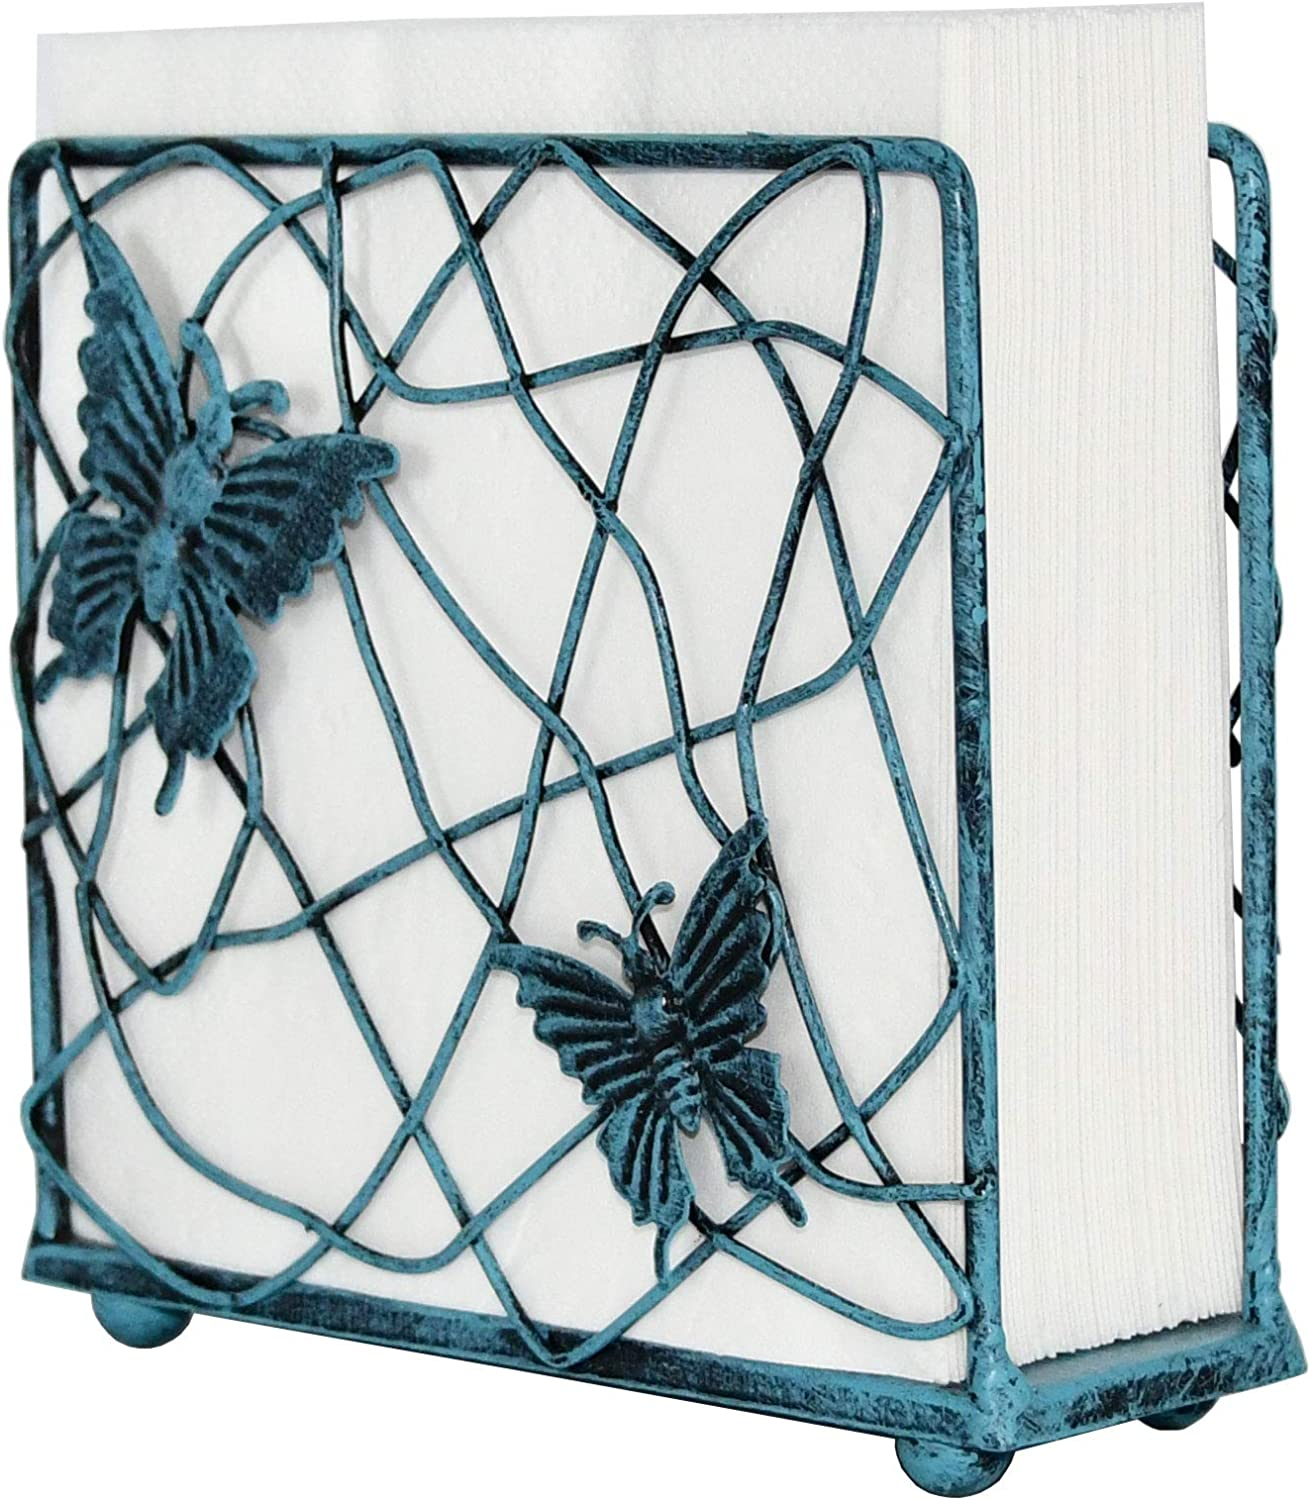 OwlGift Modern Metal Butterfly Napkin Ranking TOP17 Branches Sale SALE% OFF Holder Design